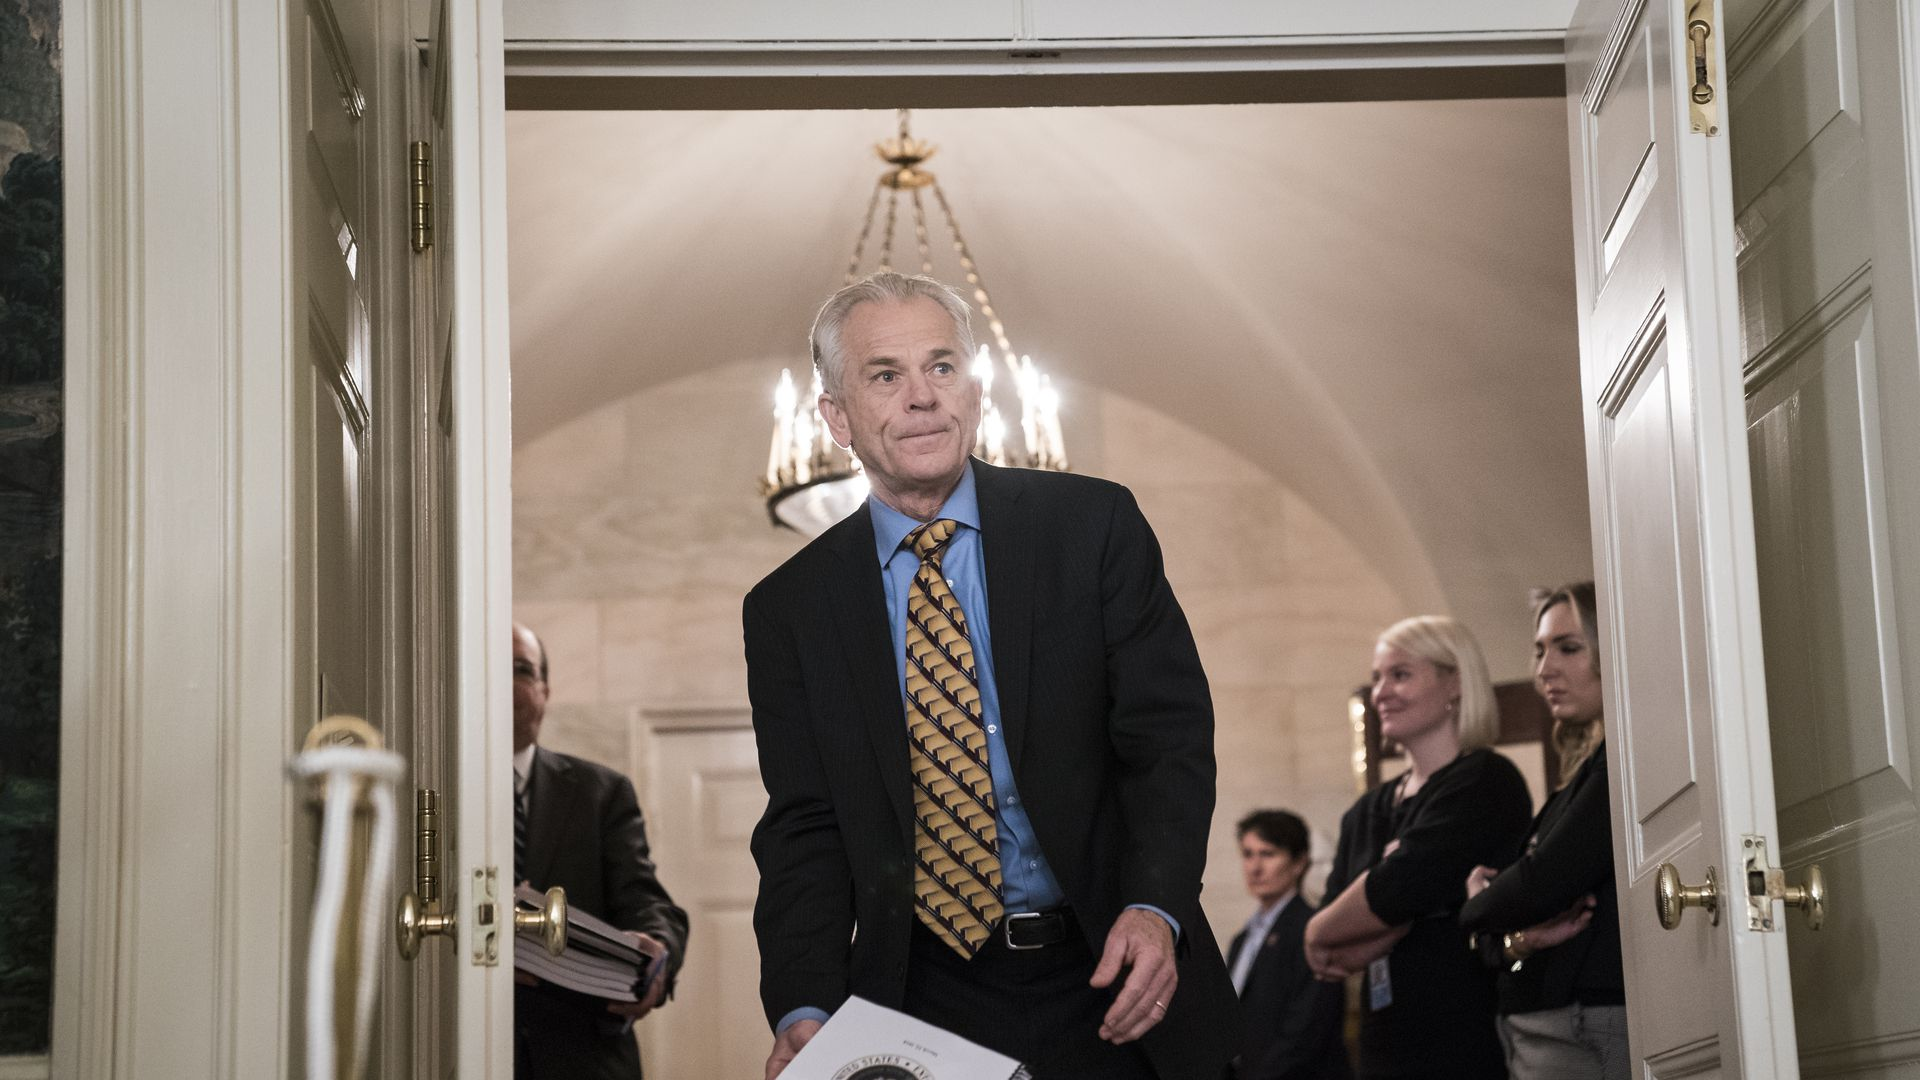 Peter Navarro, Assistant to the President, walks through a door in the White House